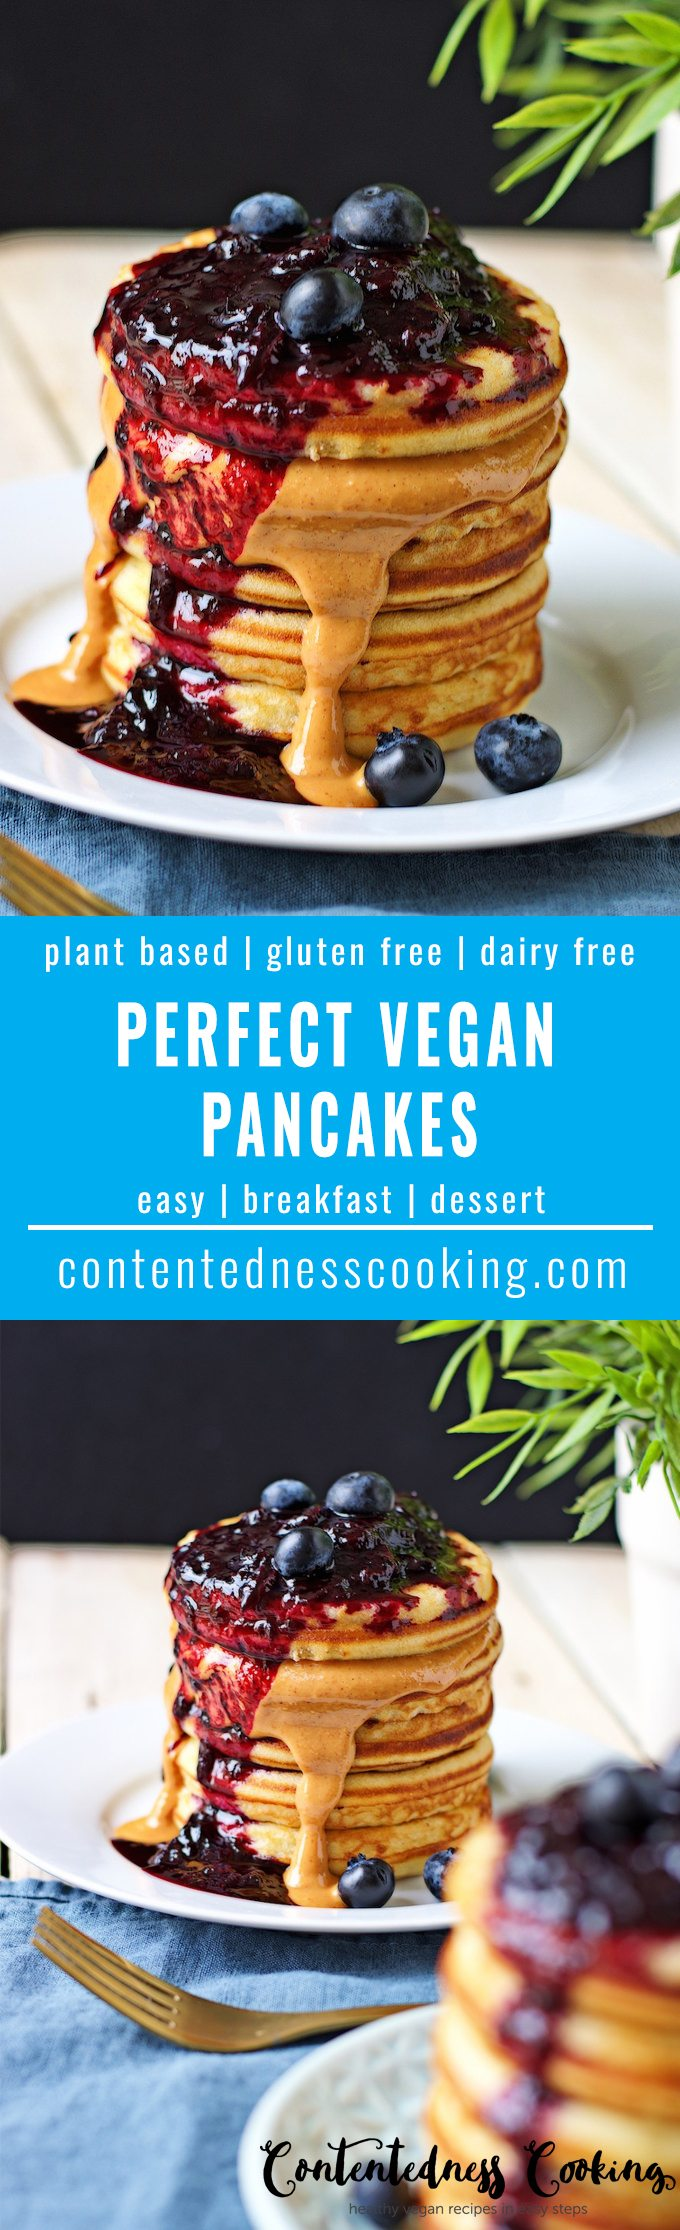 Collage of two pictures of Perfect Vegan Pancakes with recipe title text.